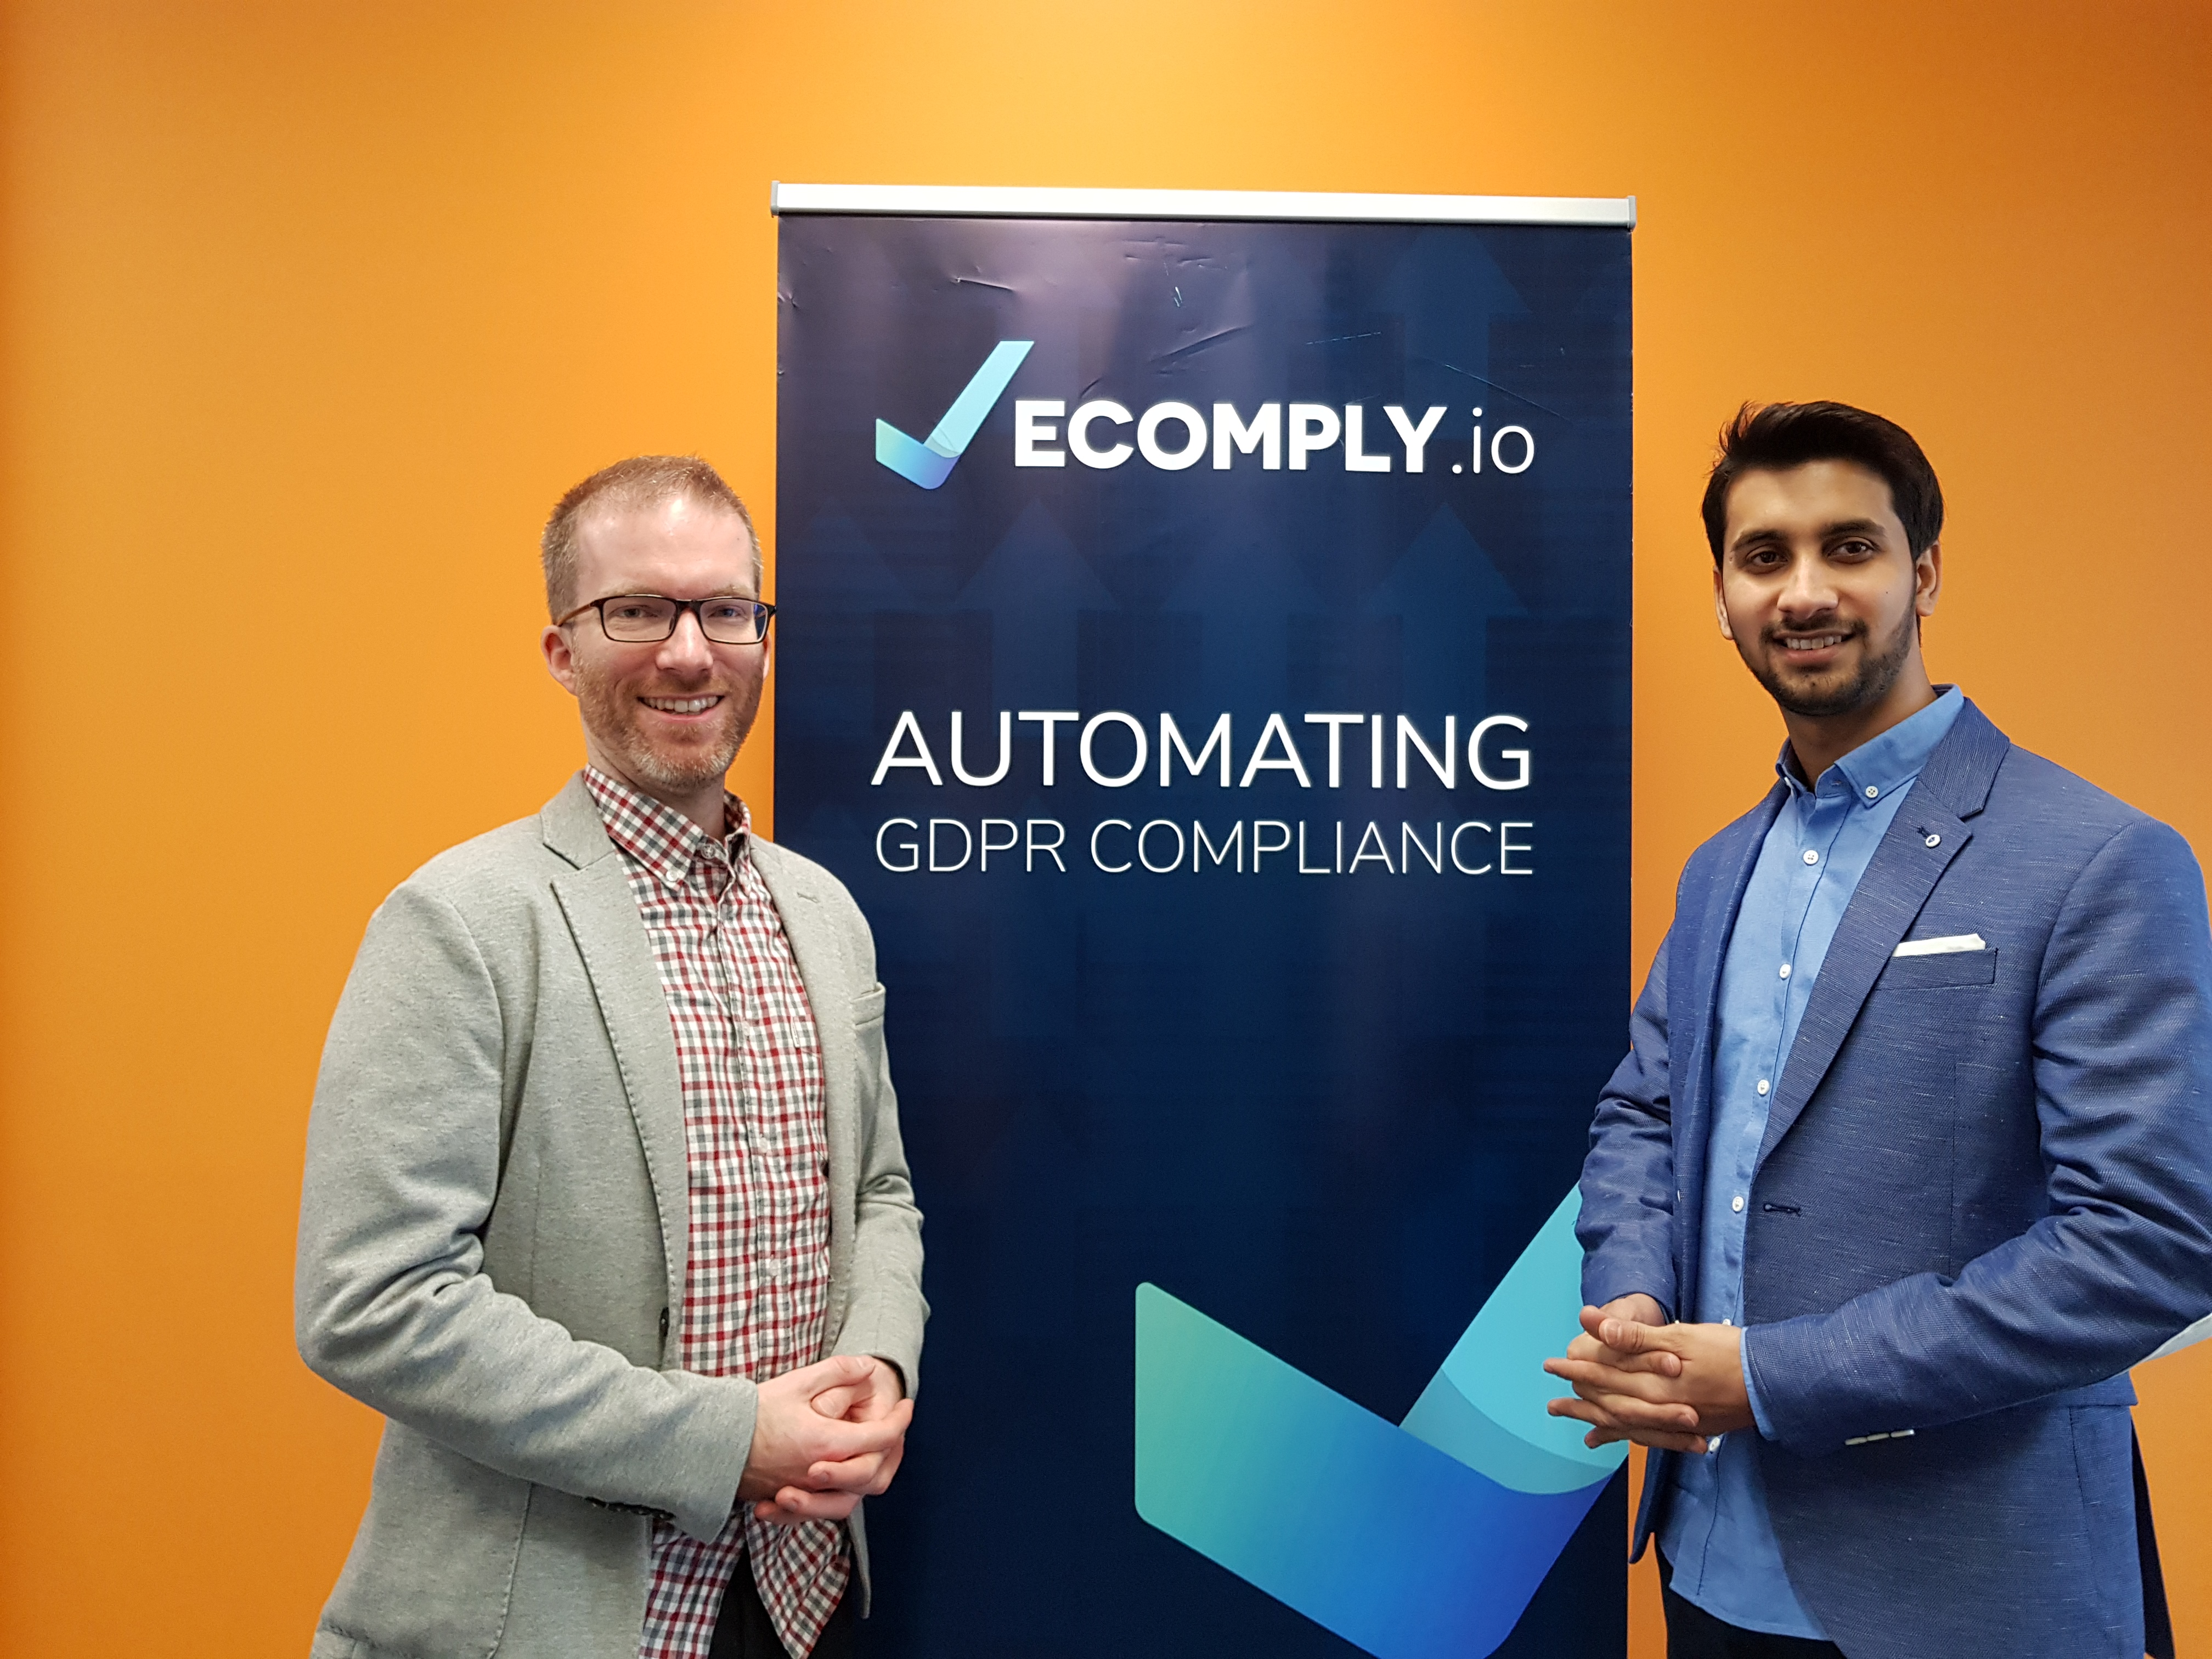 The founding team of ecomply